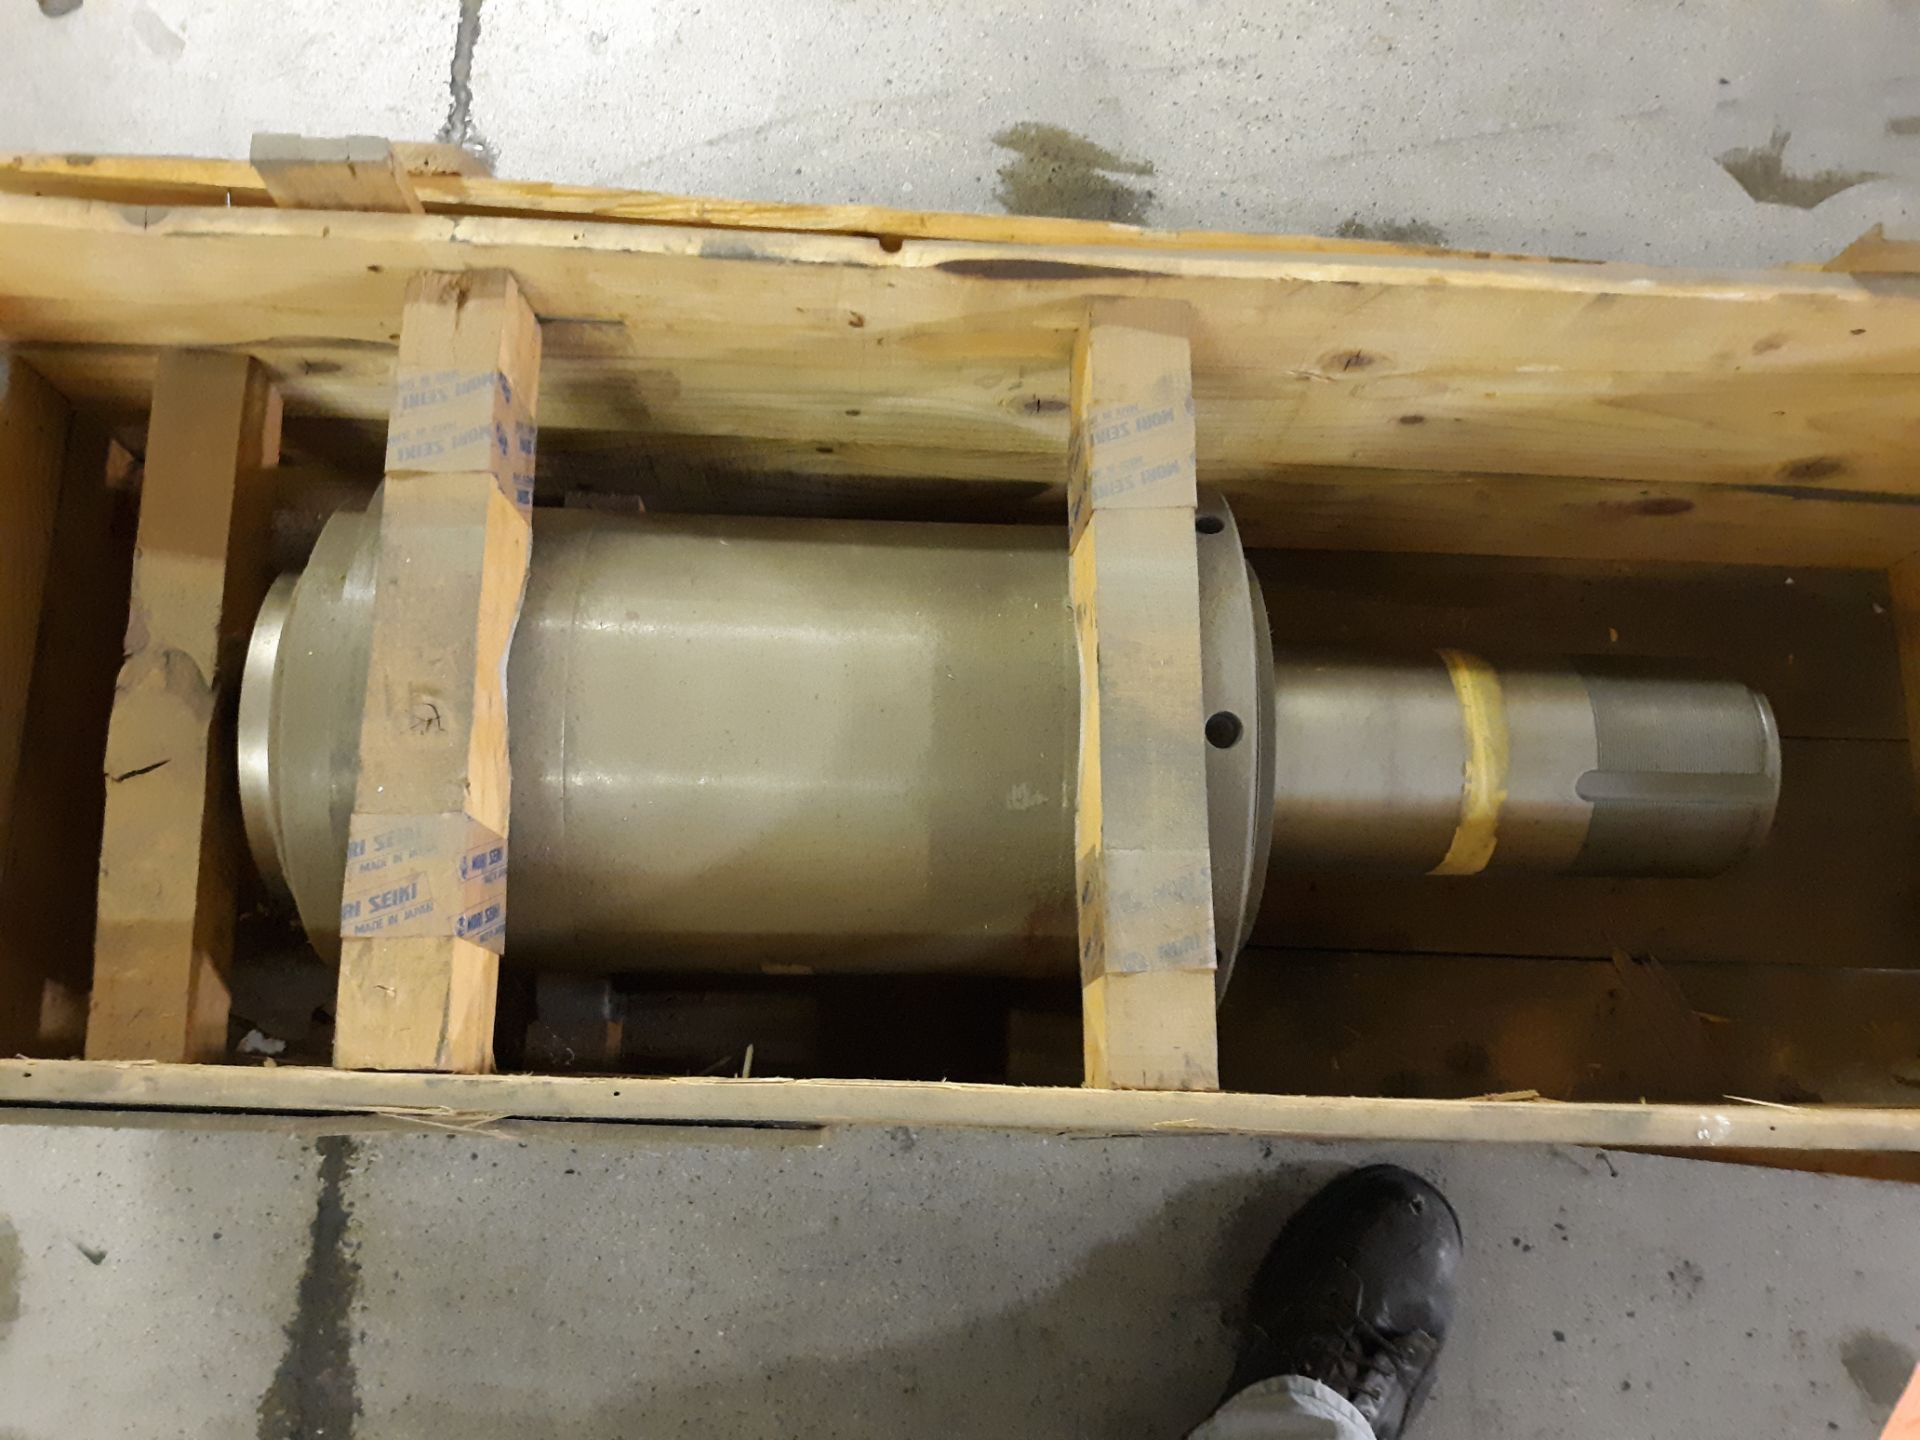 Lot 11 - MORI SEIKI SPINDLE MH 63.80 (LOCATED AT: 570 S. MAIN STREET, CHURUBUSCO, IN 46723) RIGGING FEE: $10